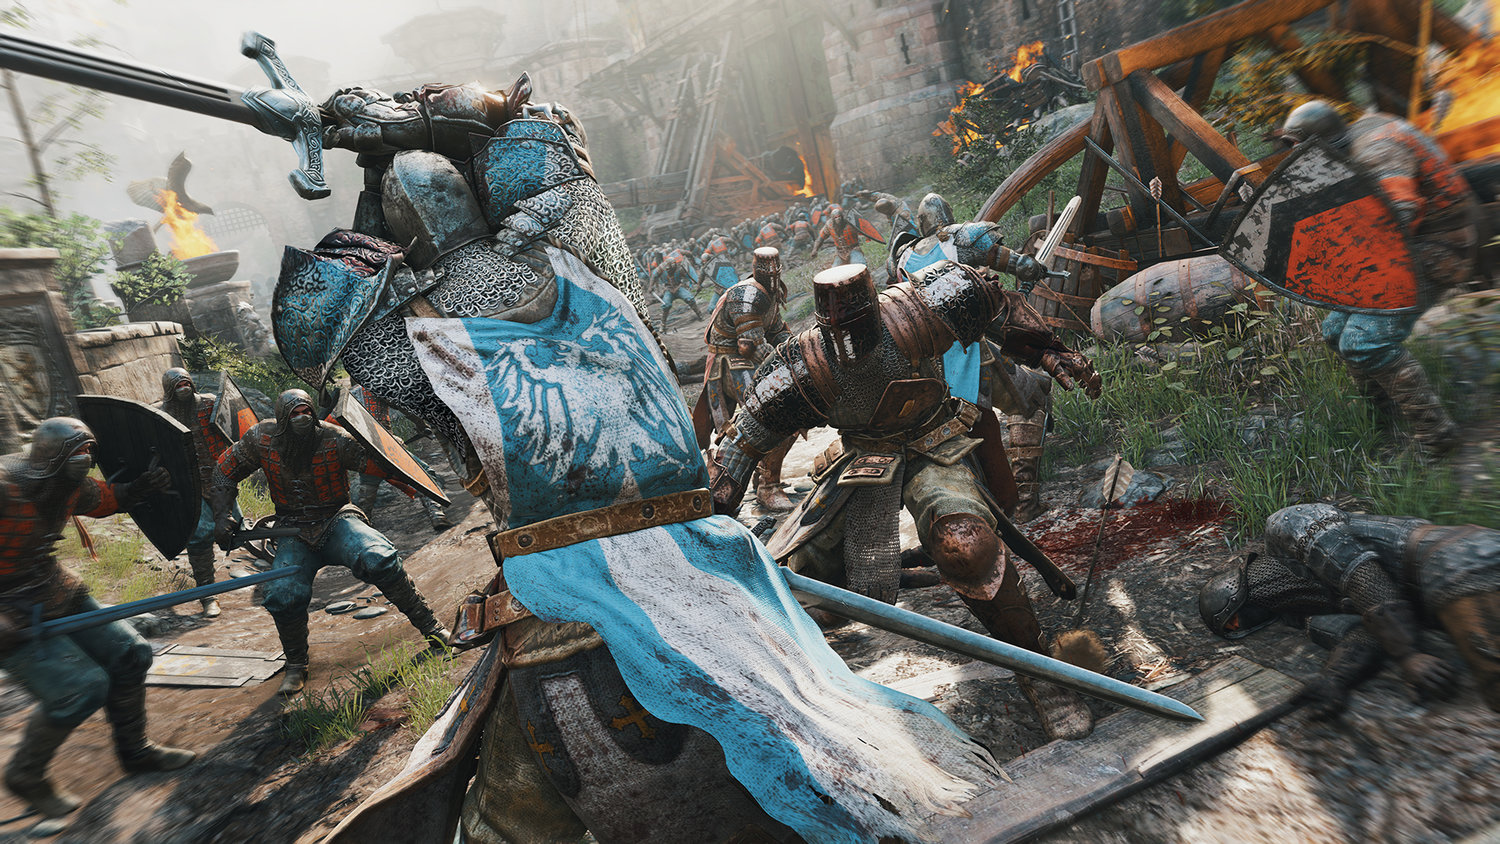 Player Predicts It Would Take Two And A Half Years To Unlock Everything In FOR HONOR Without Money